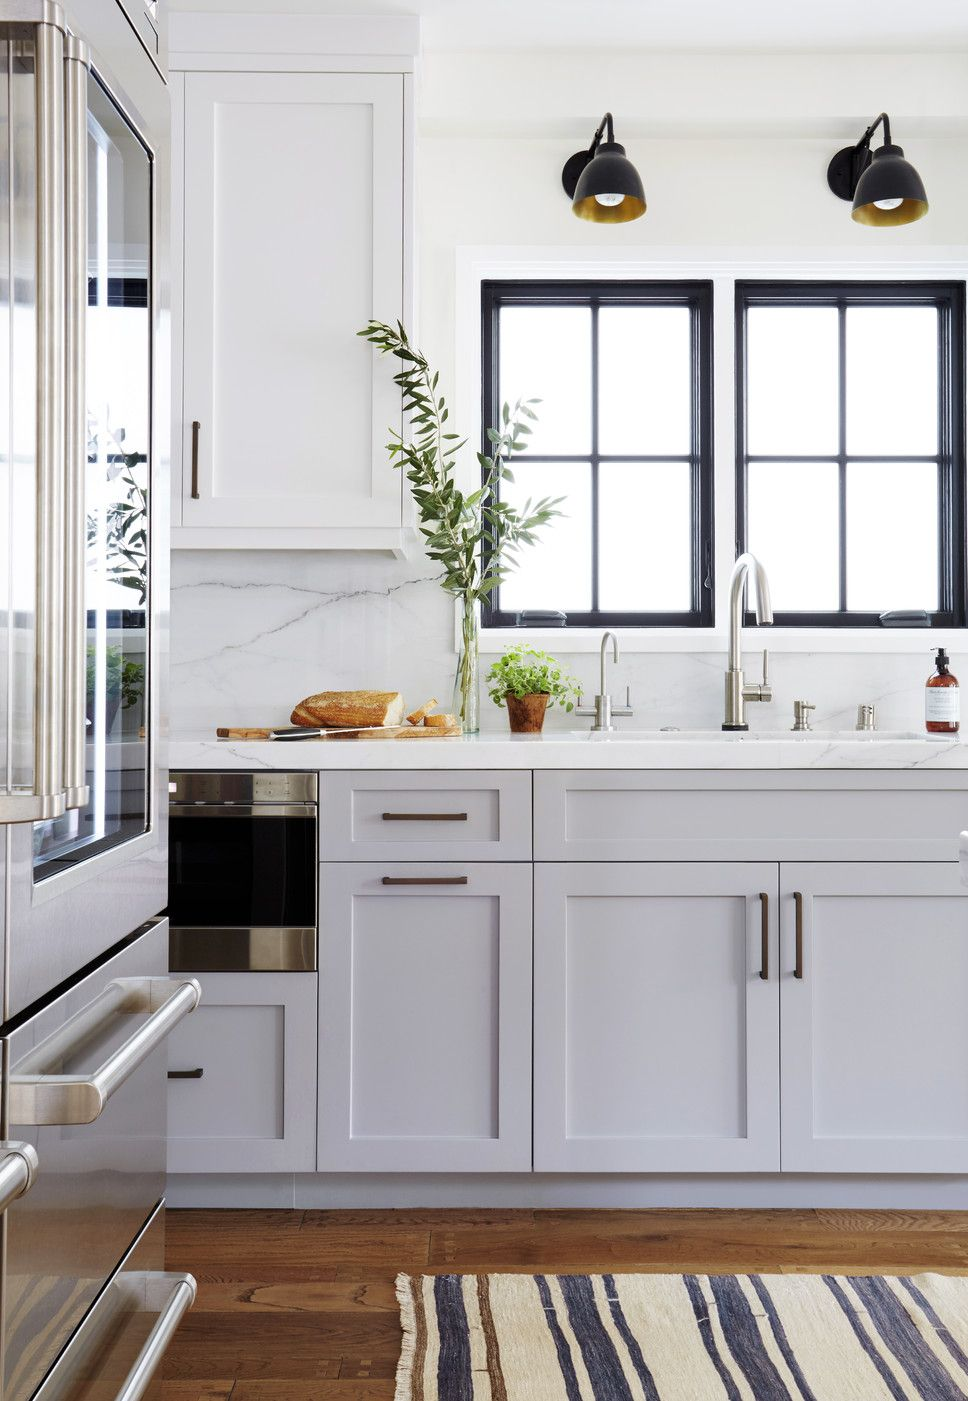 Wayfair.com - Wayfair Your Home  Modern farmhouse kitchens